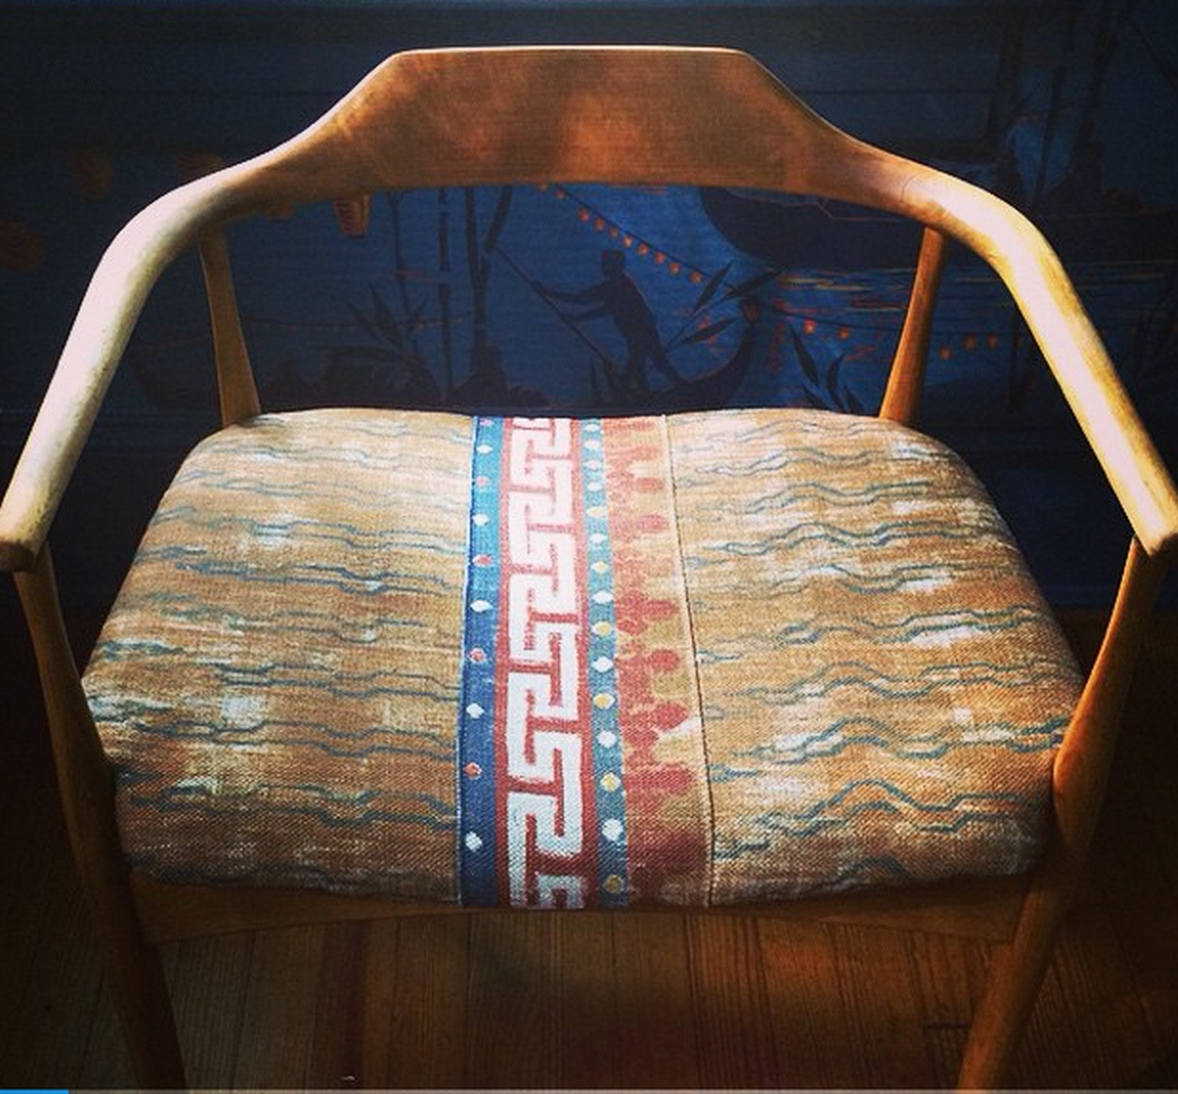 CLOTH & KIND Interior Design // vintage chair reupholstered in @zakandfox